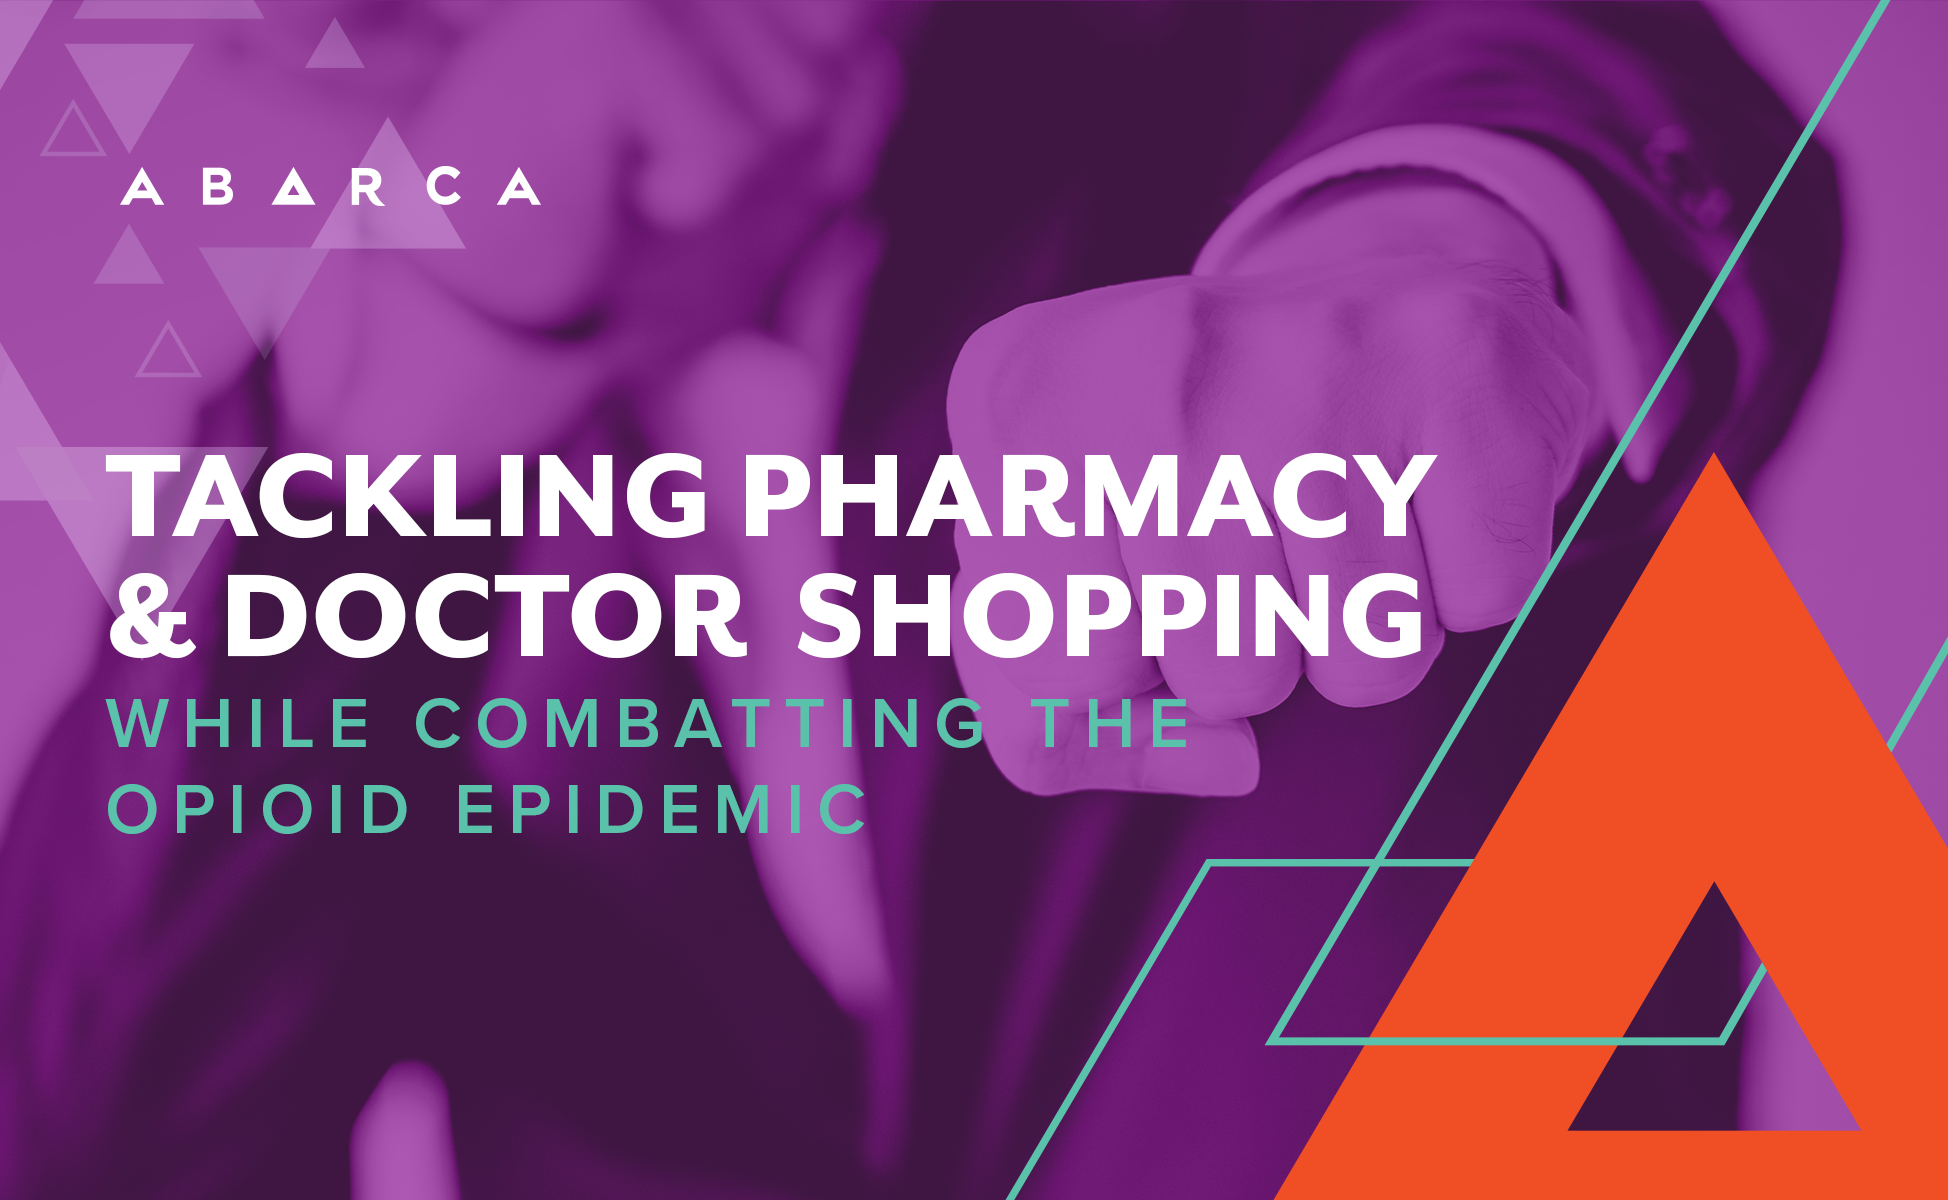 Abarca Tackles Pharmacy & Doctor Shopping While Combatting the Opioid Epidemic